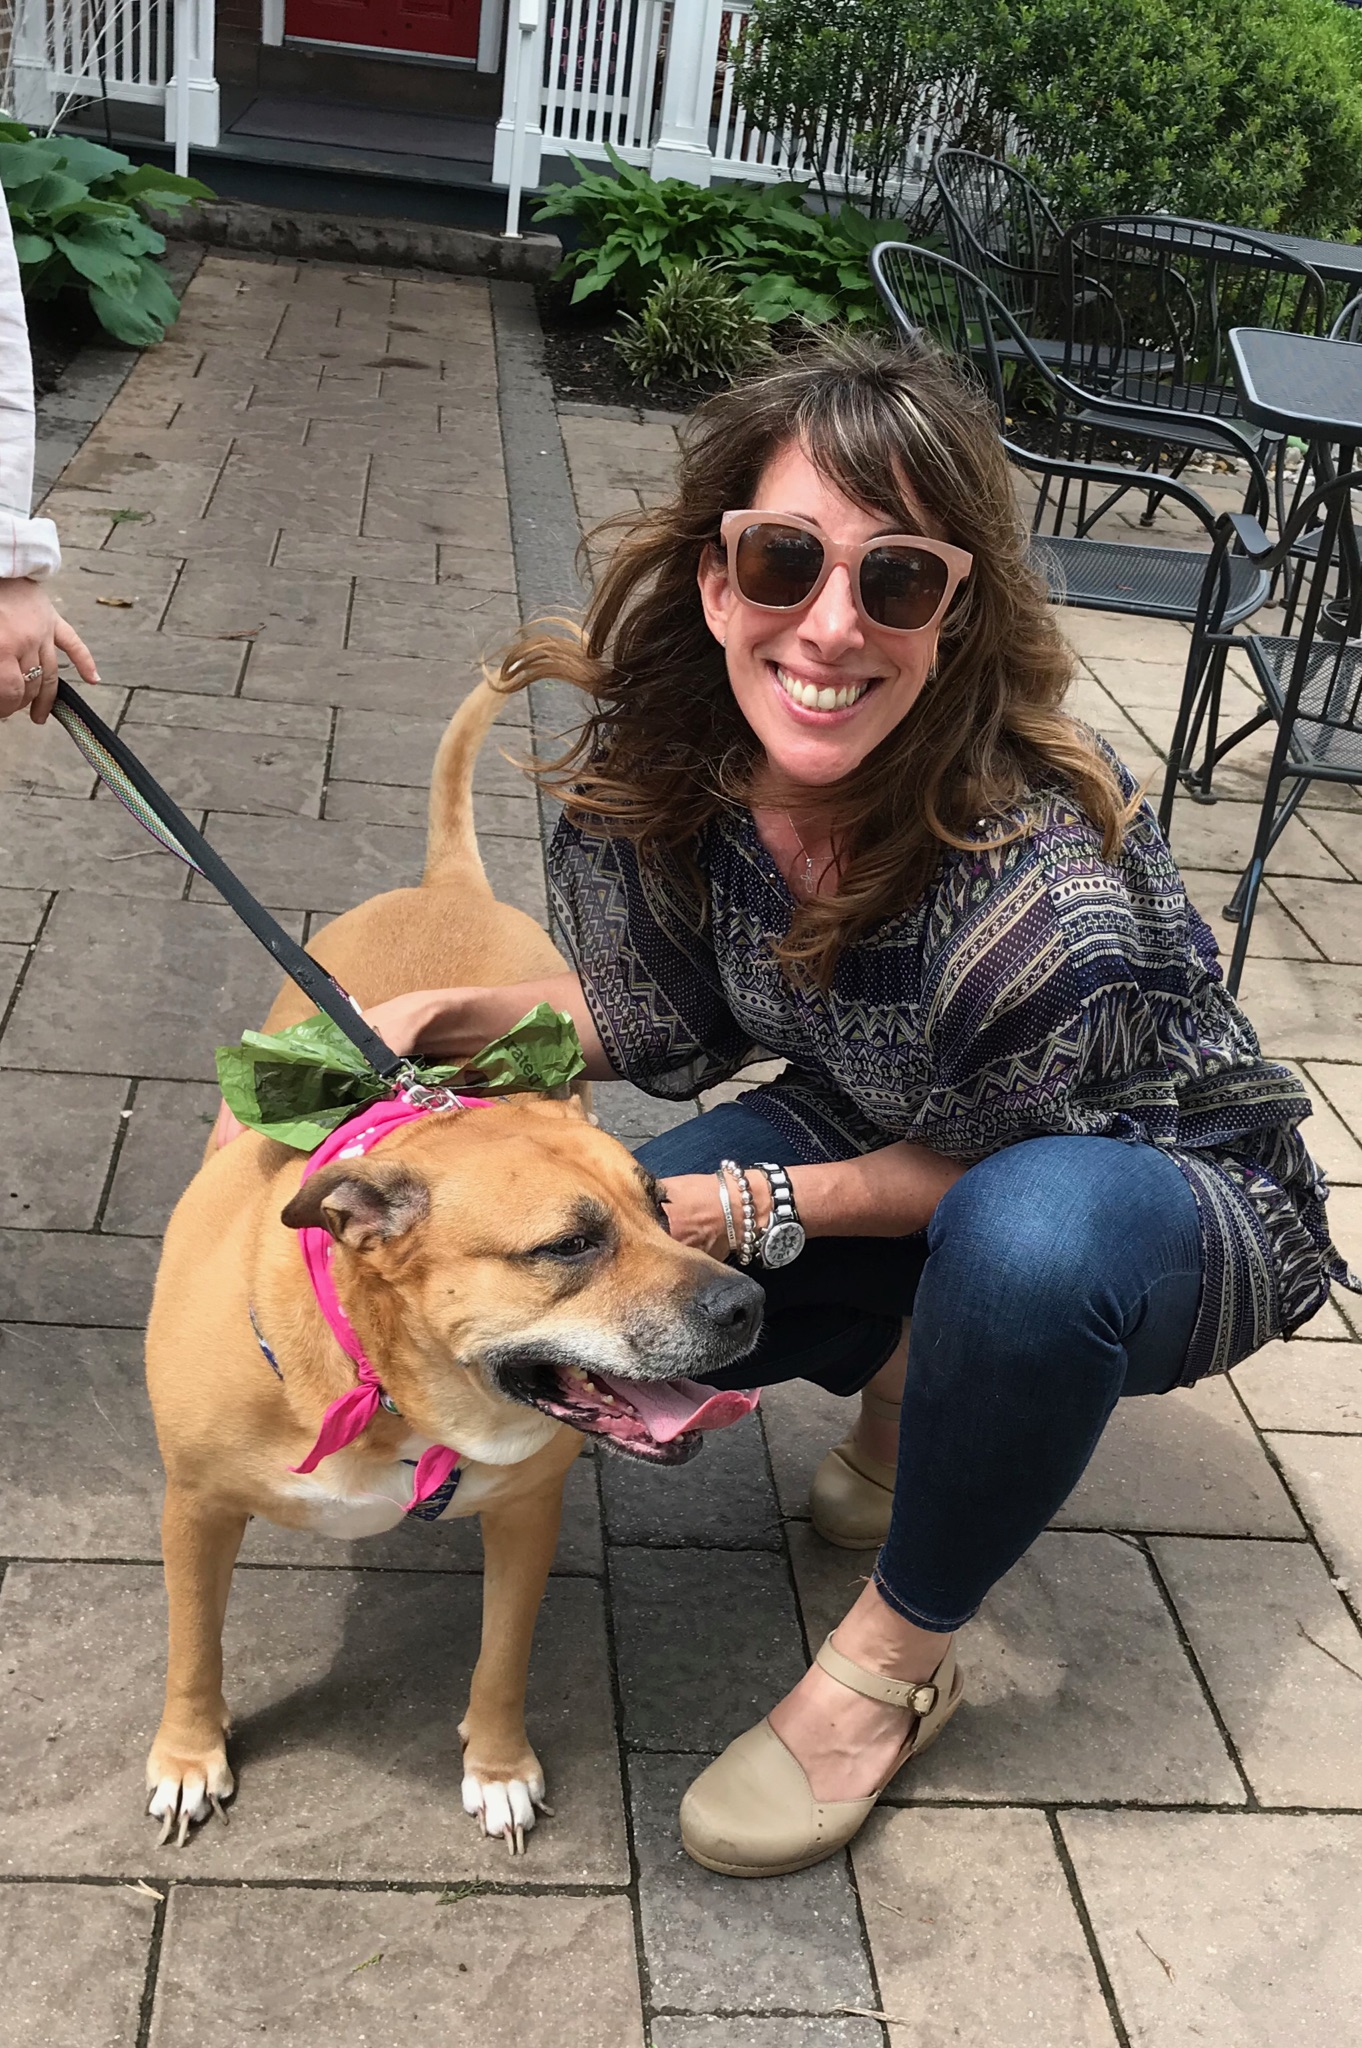 Volunteer Beth Caruso helps find Hannah a home at an Animal Alliance adoption day at her restaurant Caffe Galleria.